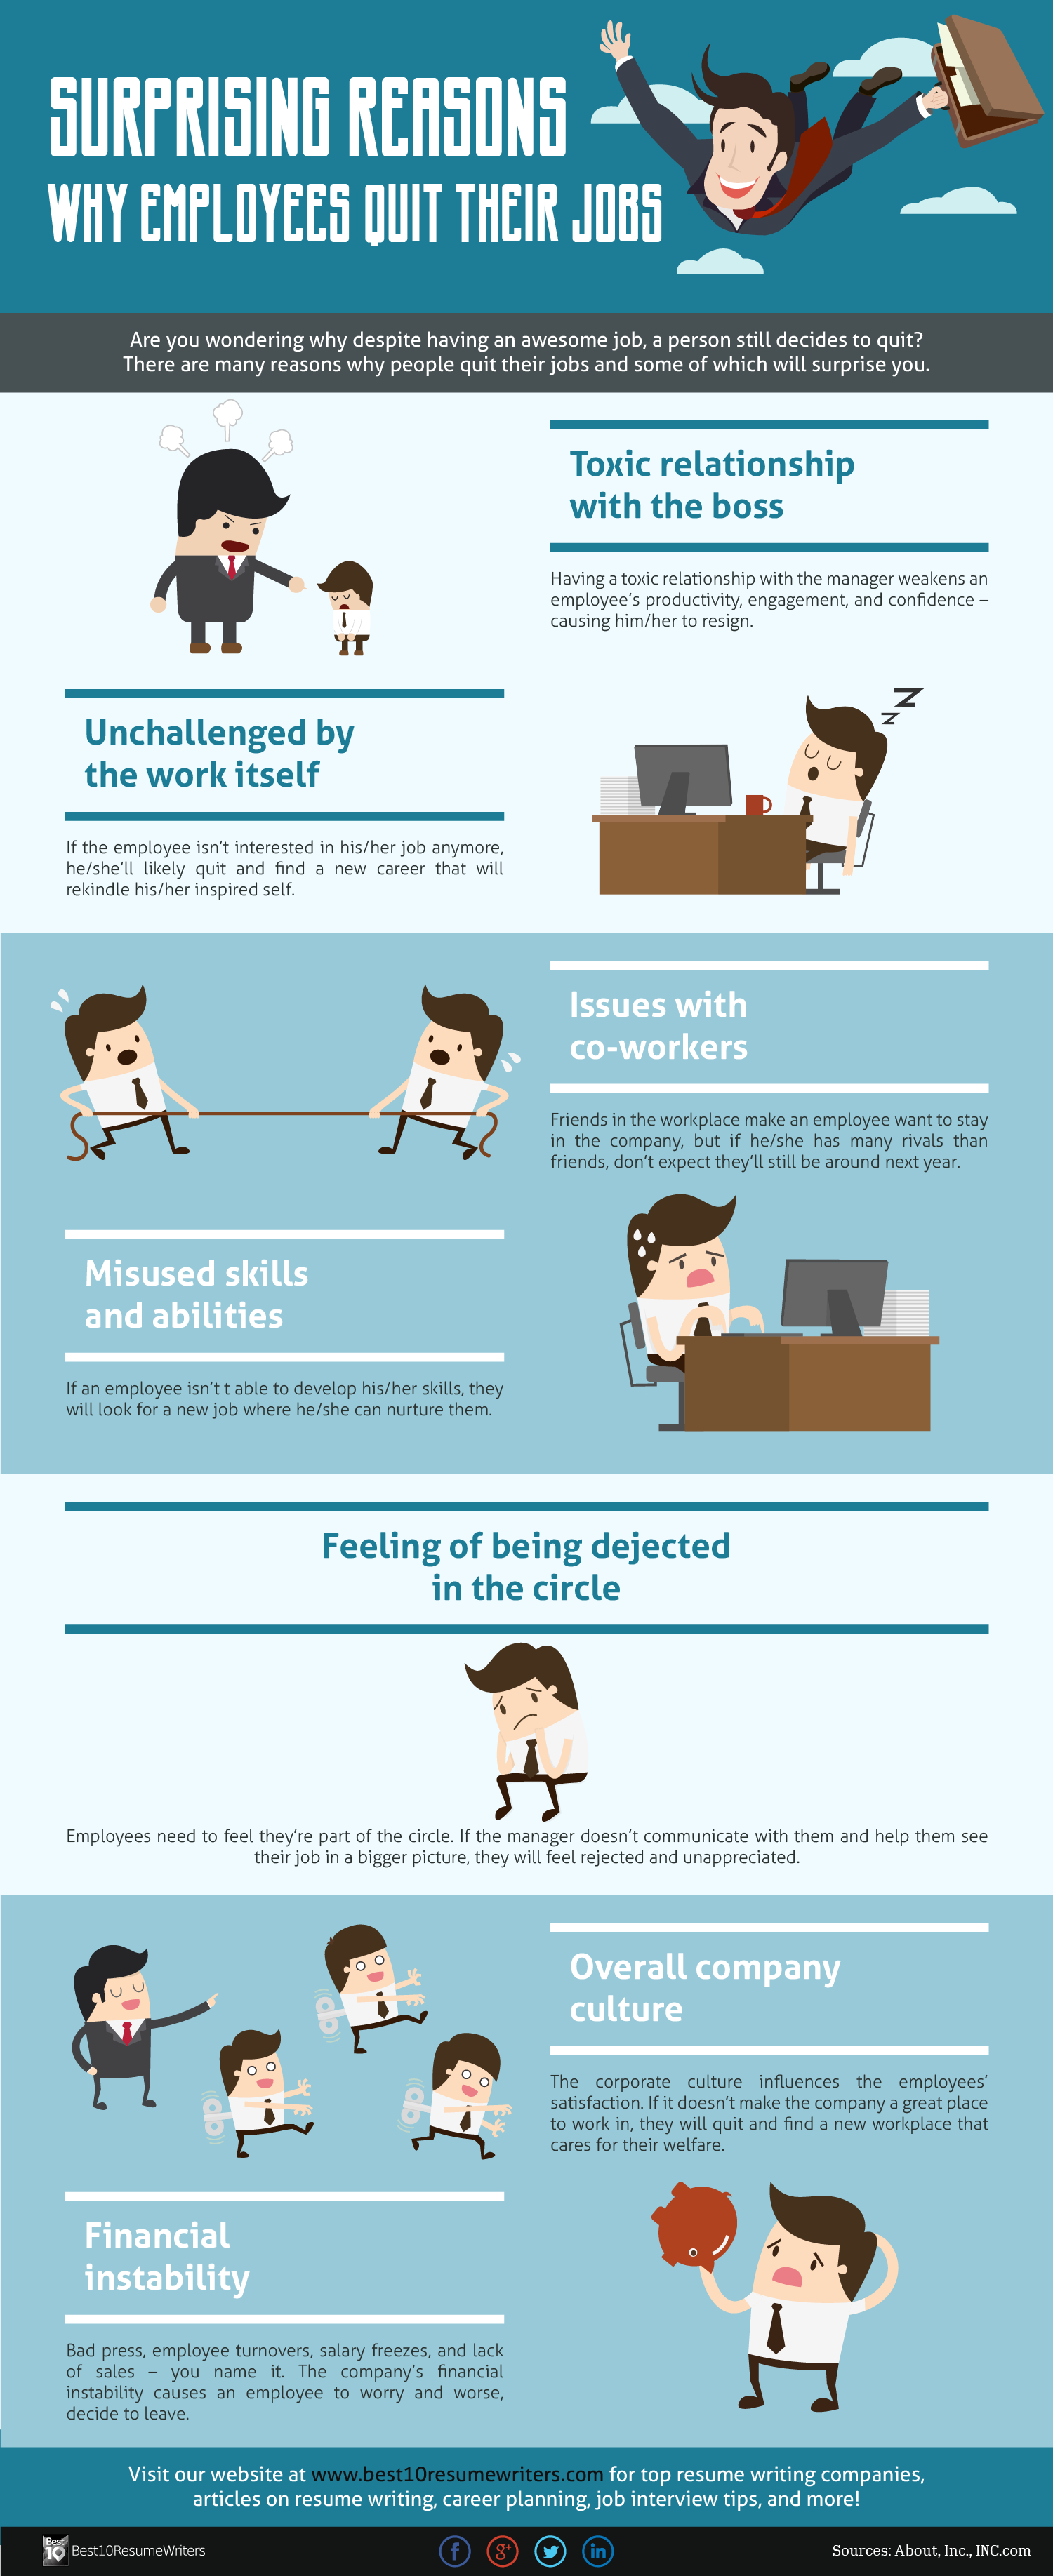 People Quit Their Jobs For These Surprising Reasons [Infographic]